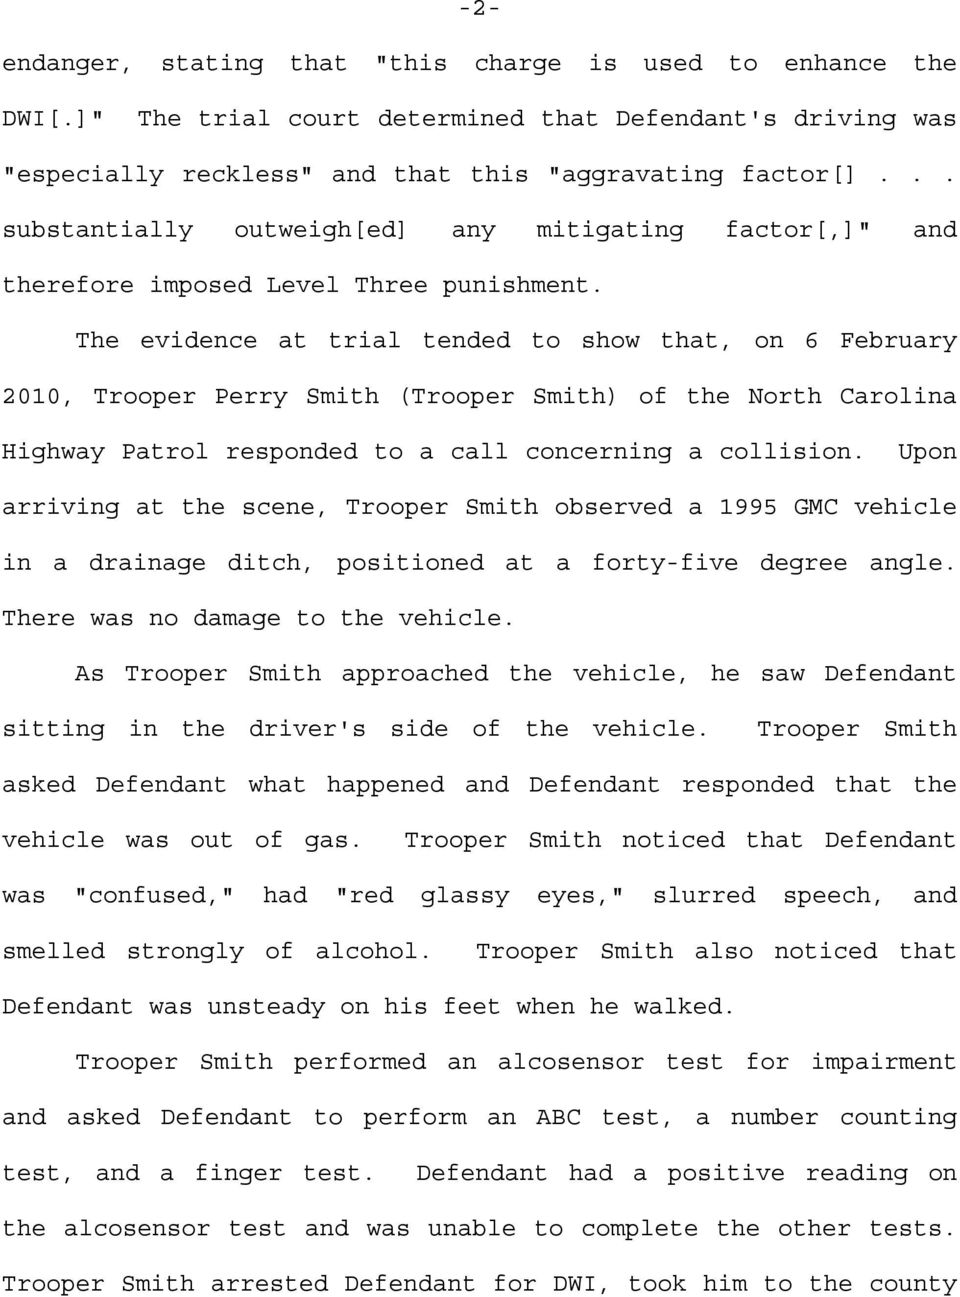 The evidence at trial tended to show that, on 6 February 2010, Trooper Perry Smith (Trooper Smith) of the North Carolina Highway Patrol responded to a call concerning a collision.